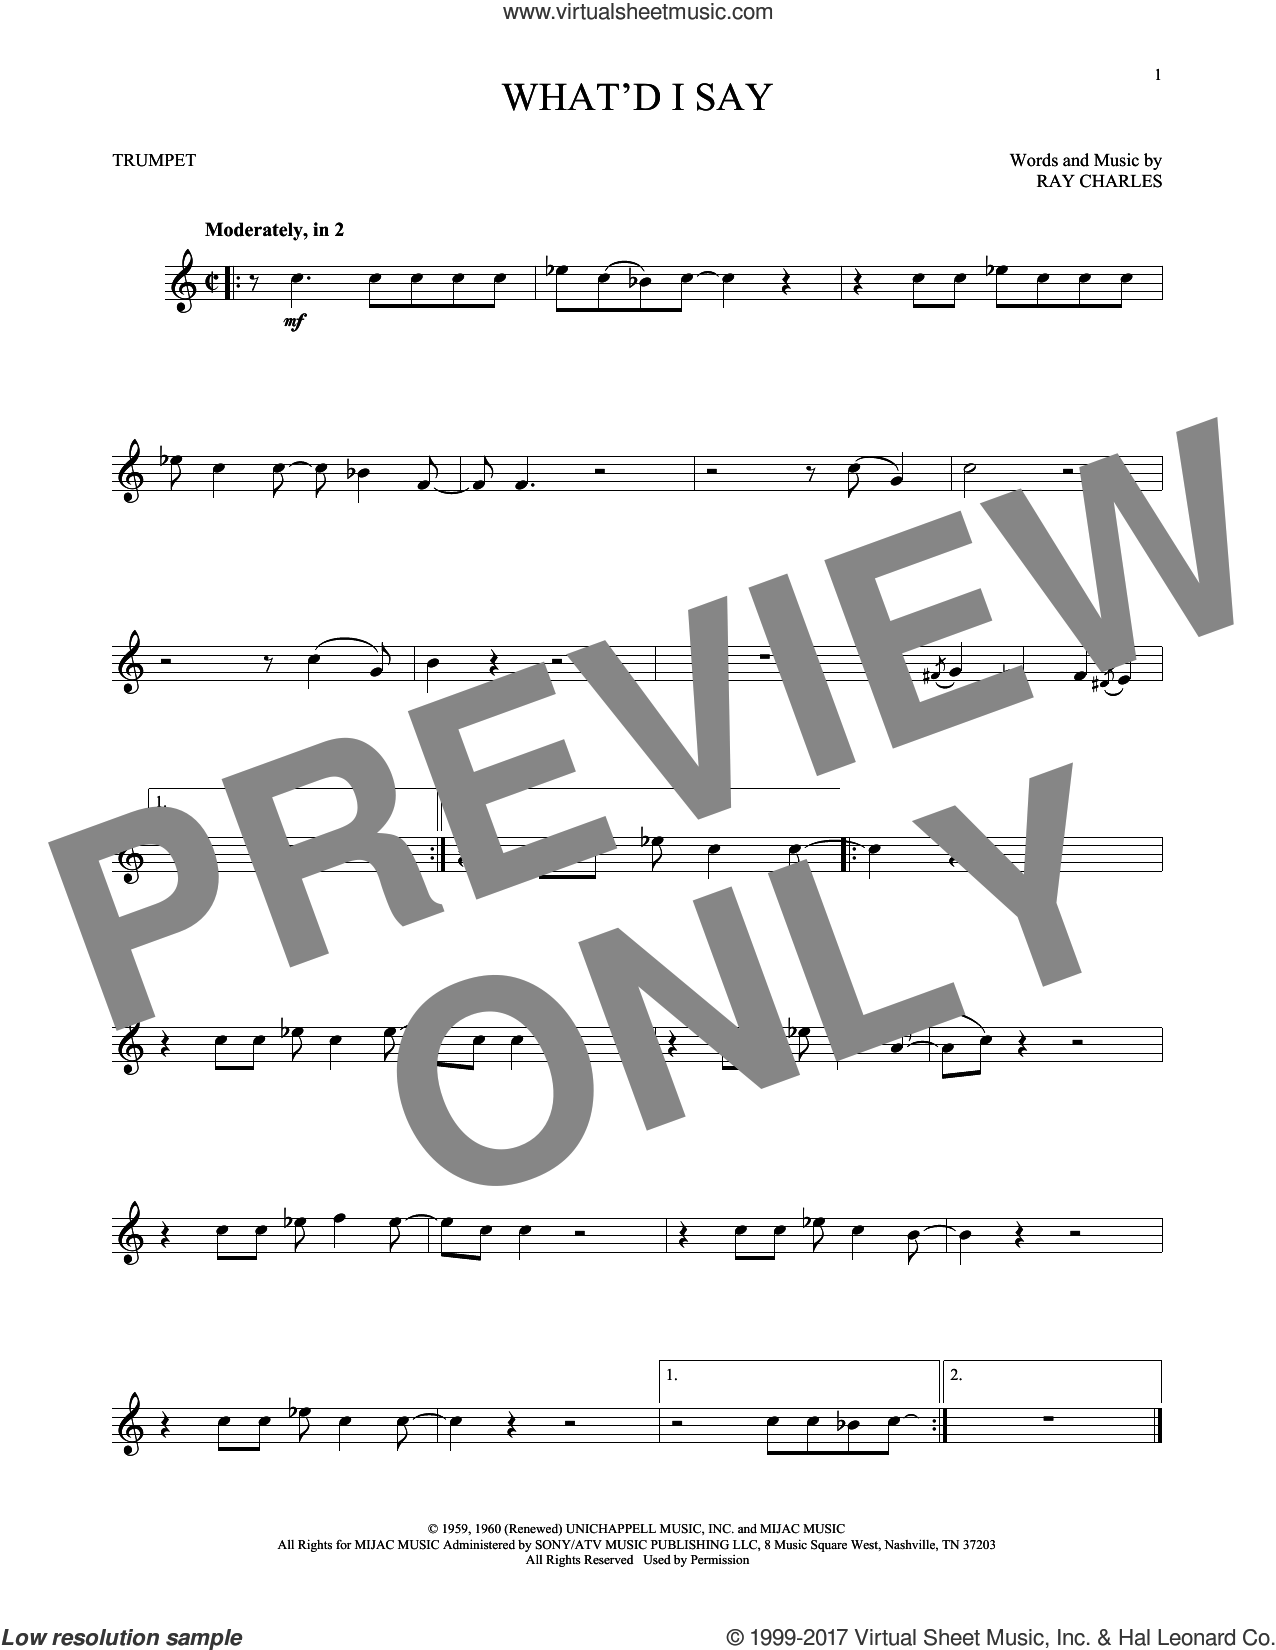 What'd I Say sheet music for trumpet solo by Ray Charles, intermediate skill level